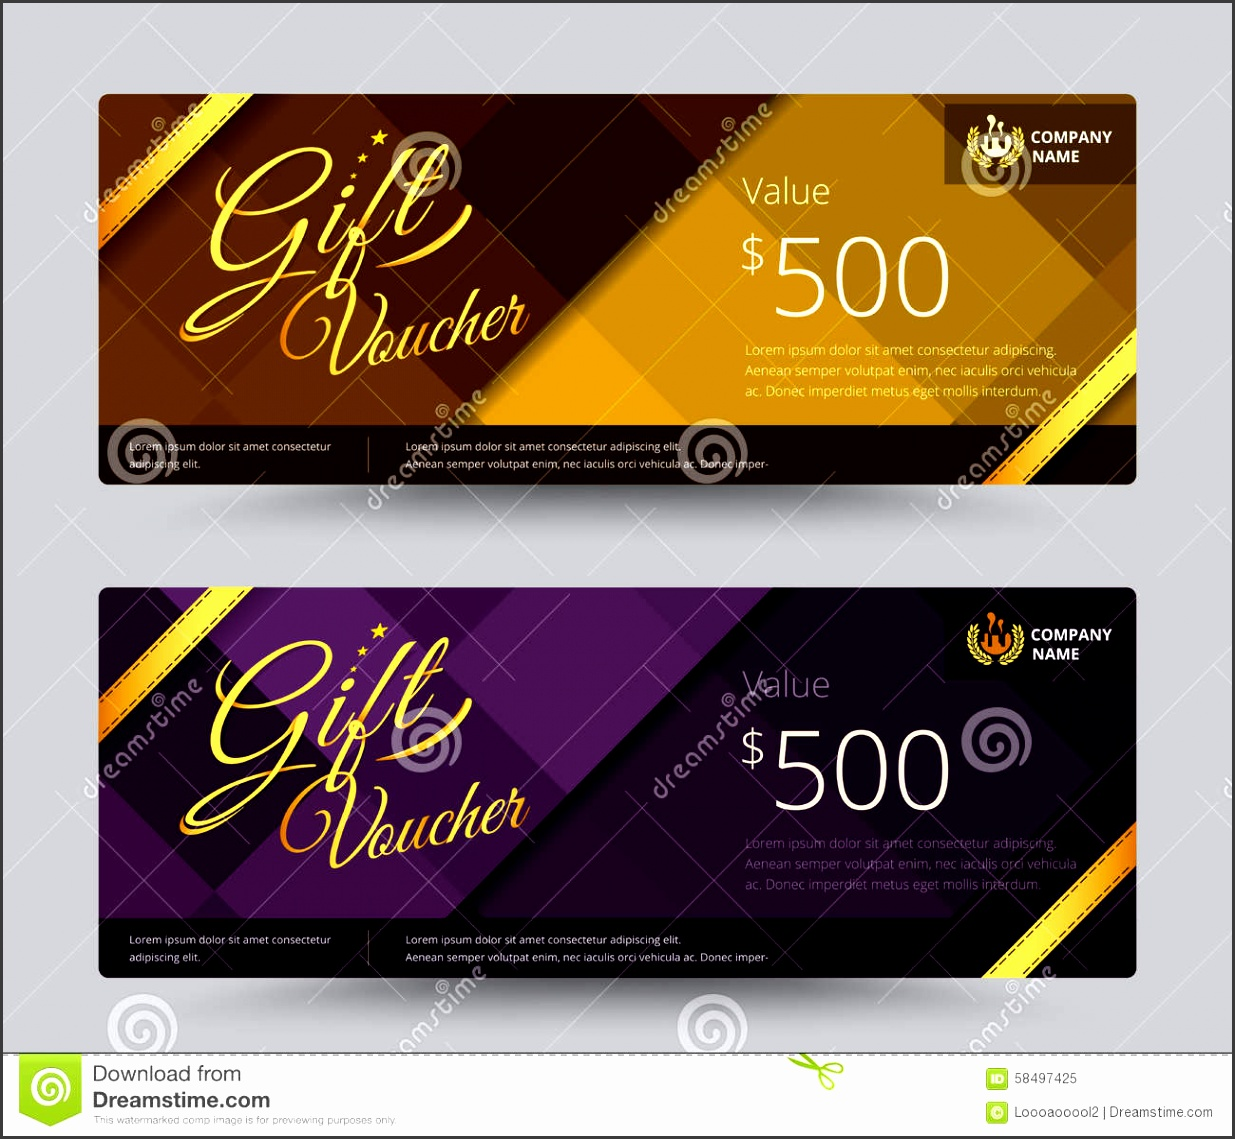 t voucher coupon template design special time coupon temp card best customer thank giving other sale vector